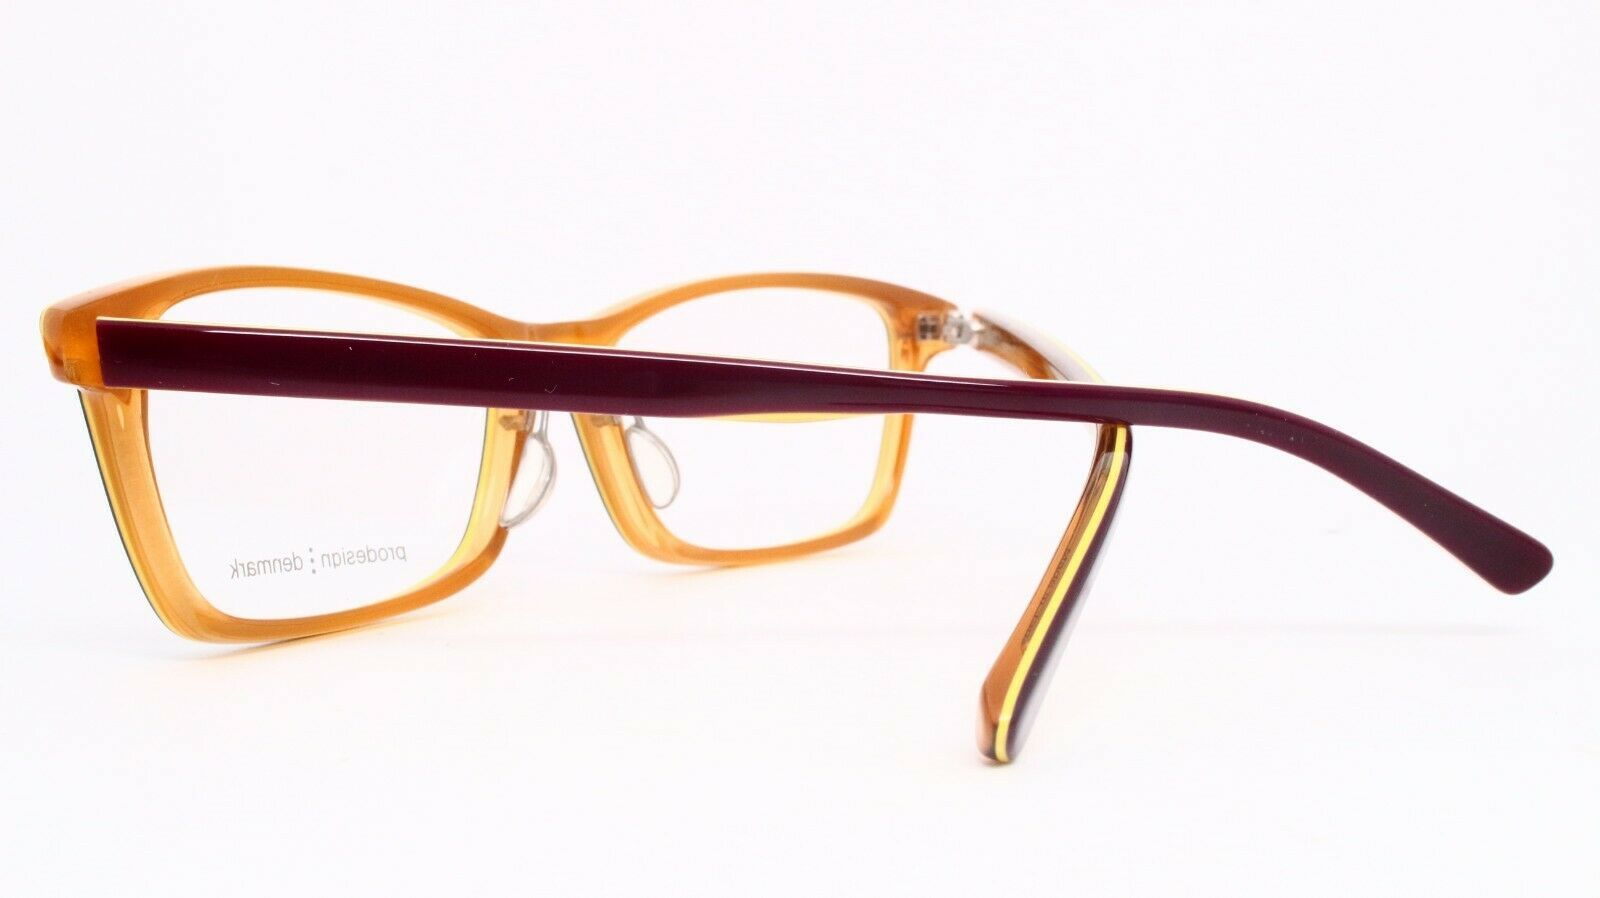 NEW PRODESIGN DENMARK 1759 1 c.3732 PLUM EYEGLASSES FRAME 55-15-140 MK358 Japan image 4